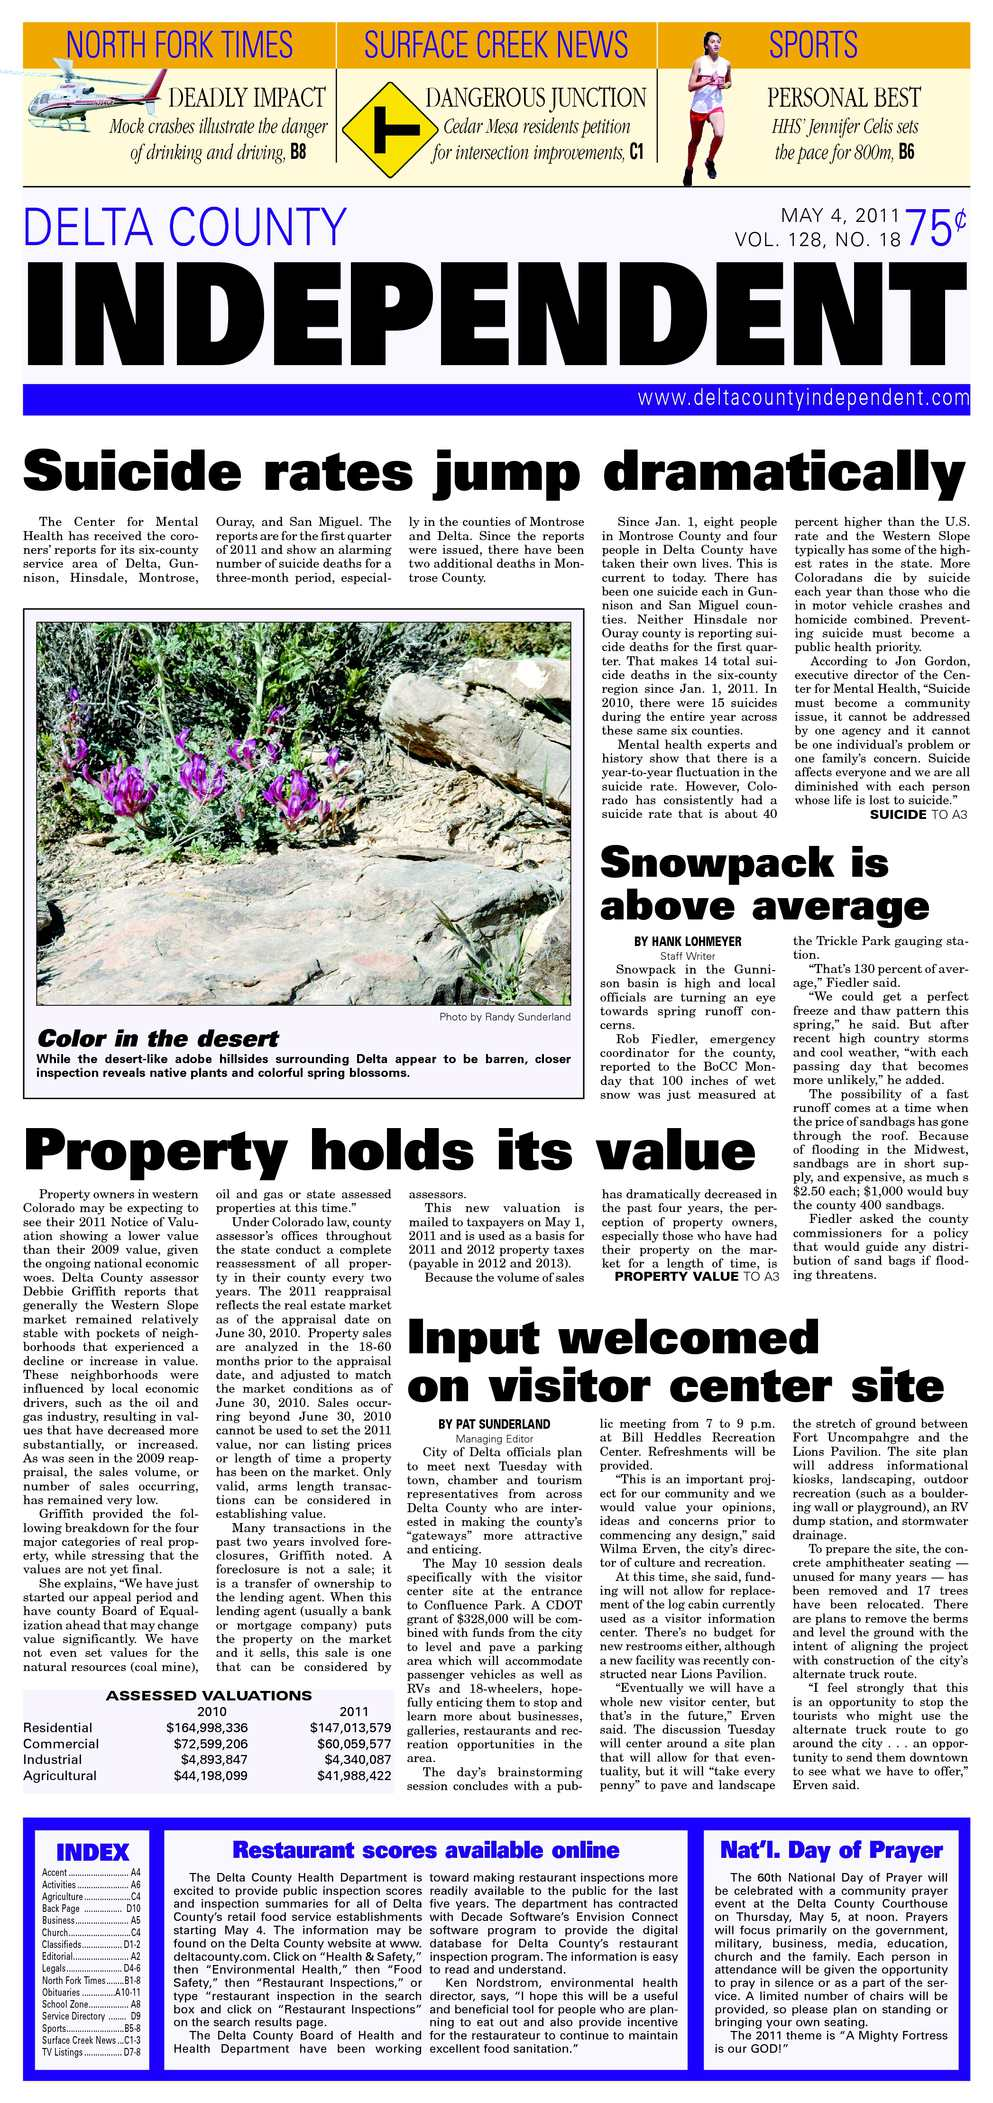 Calaméo - Delta County Independent, Issue 18, May 4, 2011